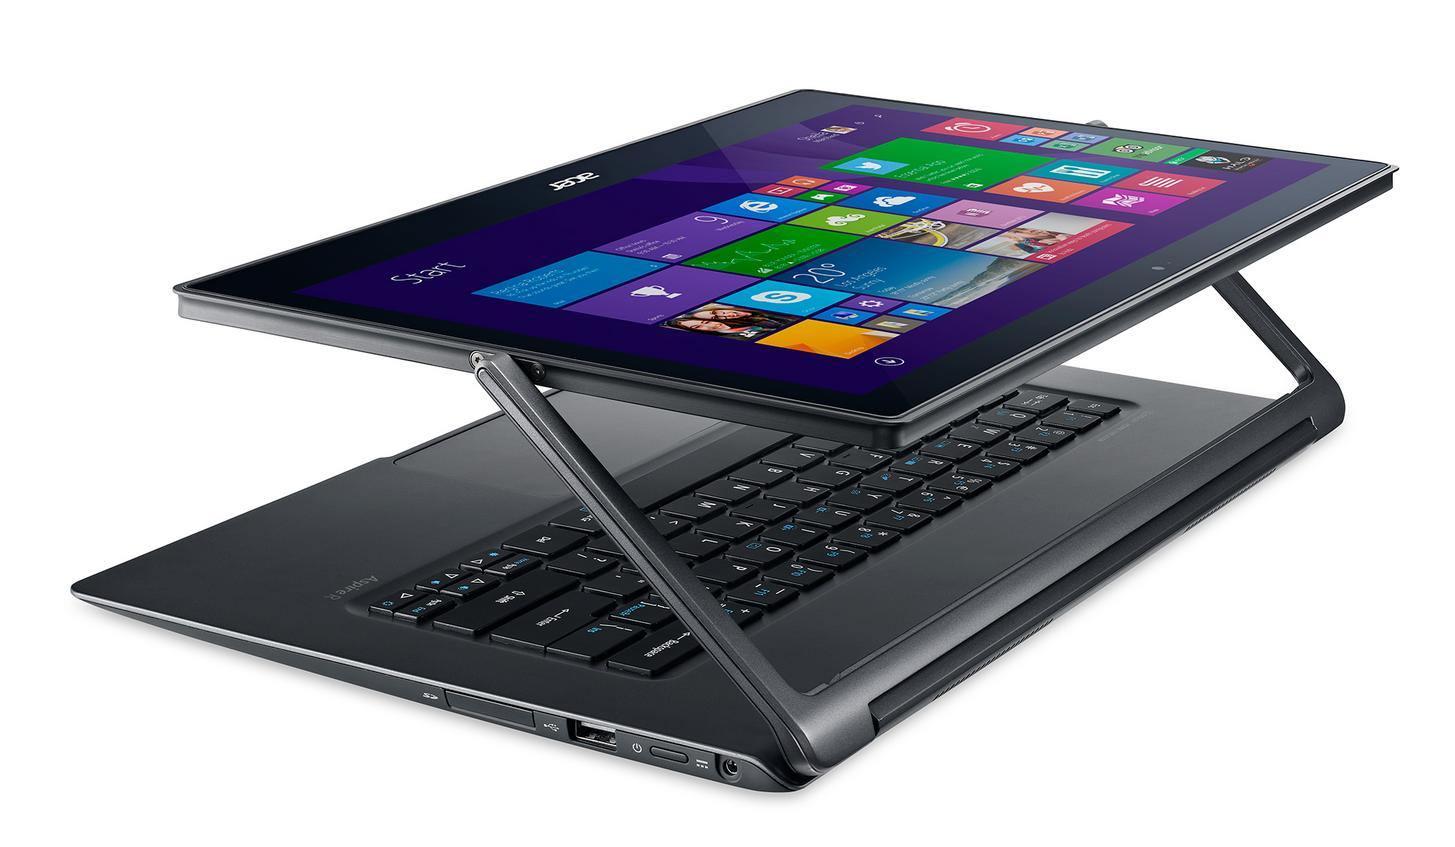 Acer Aspire R13 Touchscreen 2-in-1 Laptop